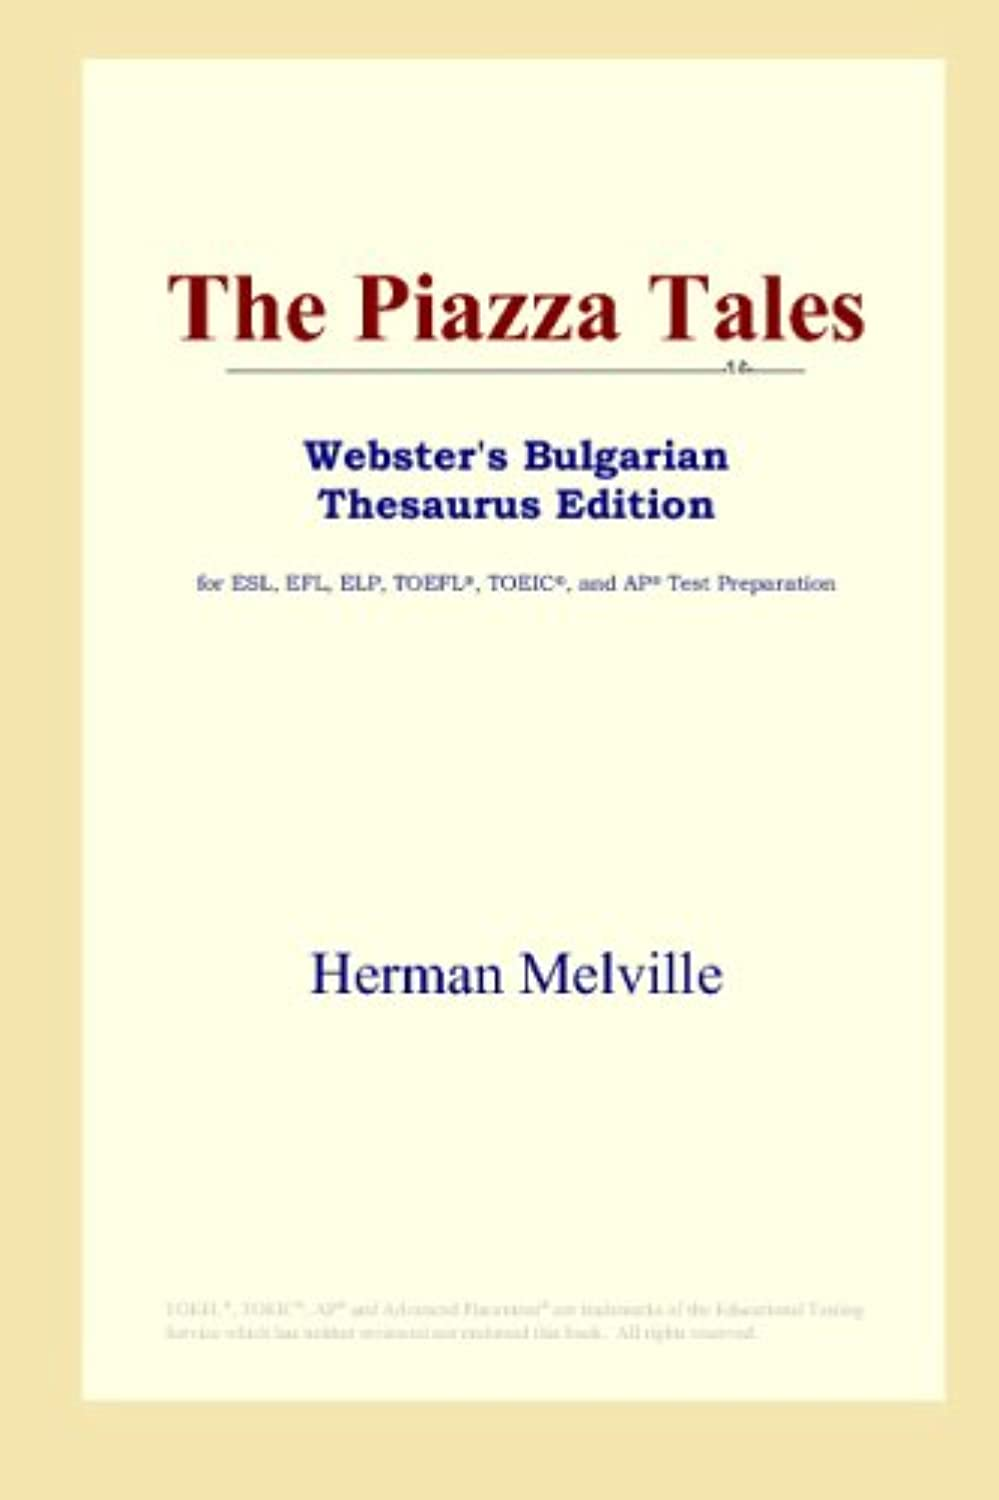 The Piazza Tales (Webster's Bulgarian Thesaurus Edition)